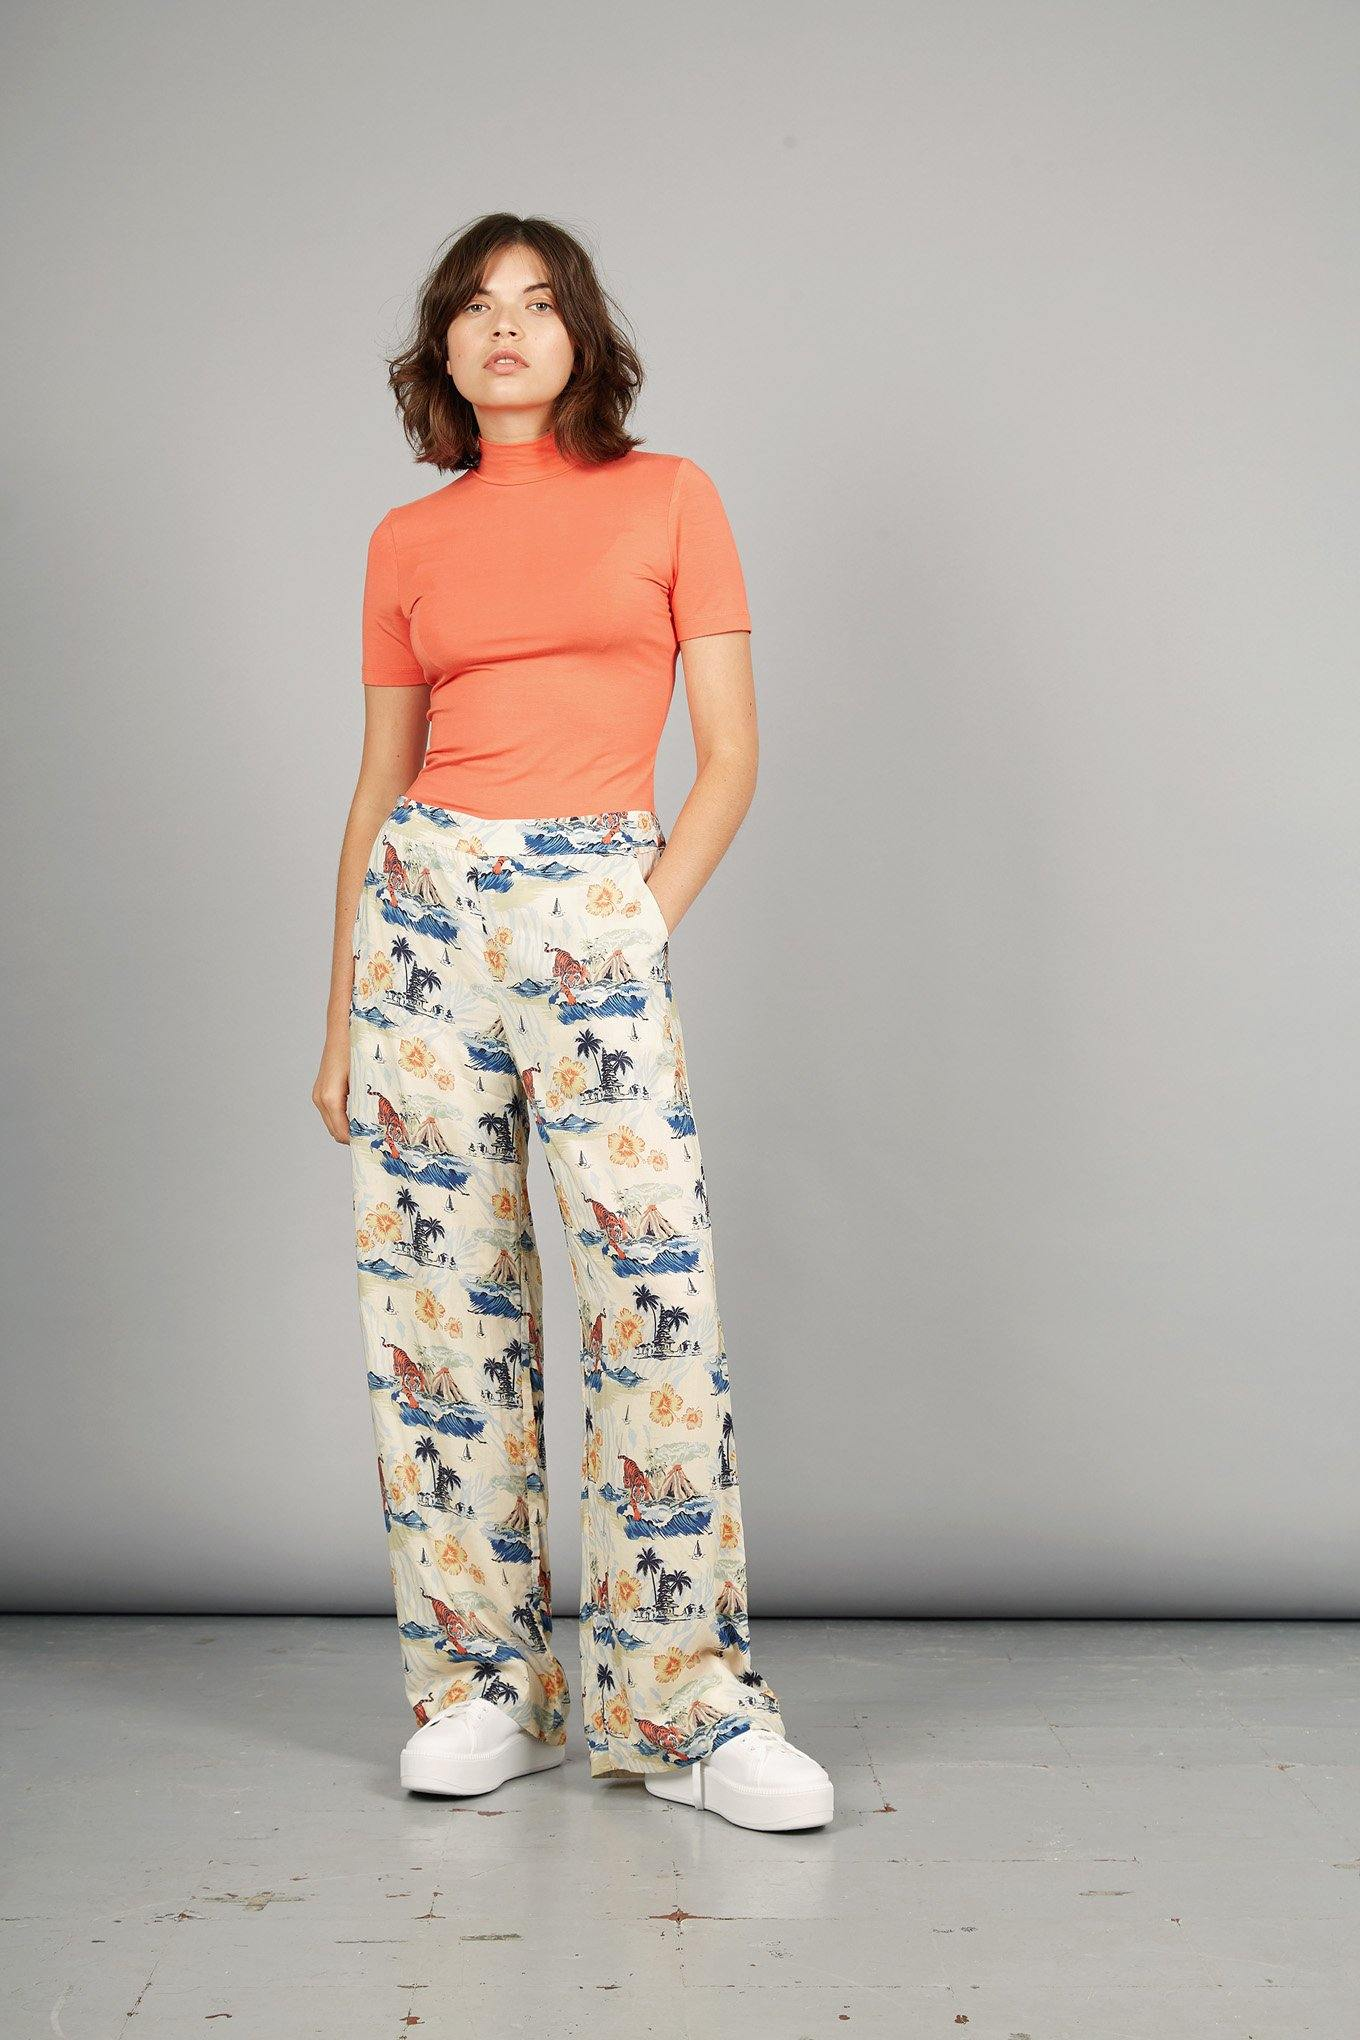 ROAR Rayon Trousers Bali Surf Print - Komodo Fashion